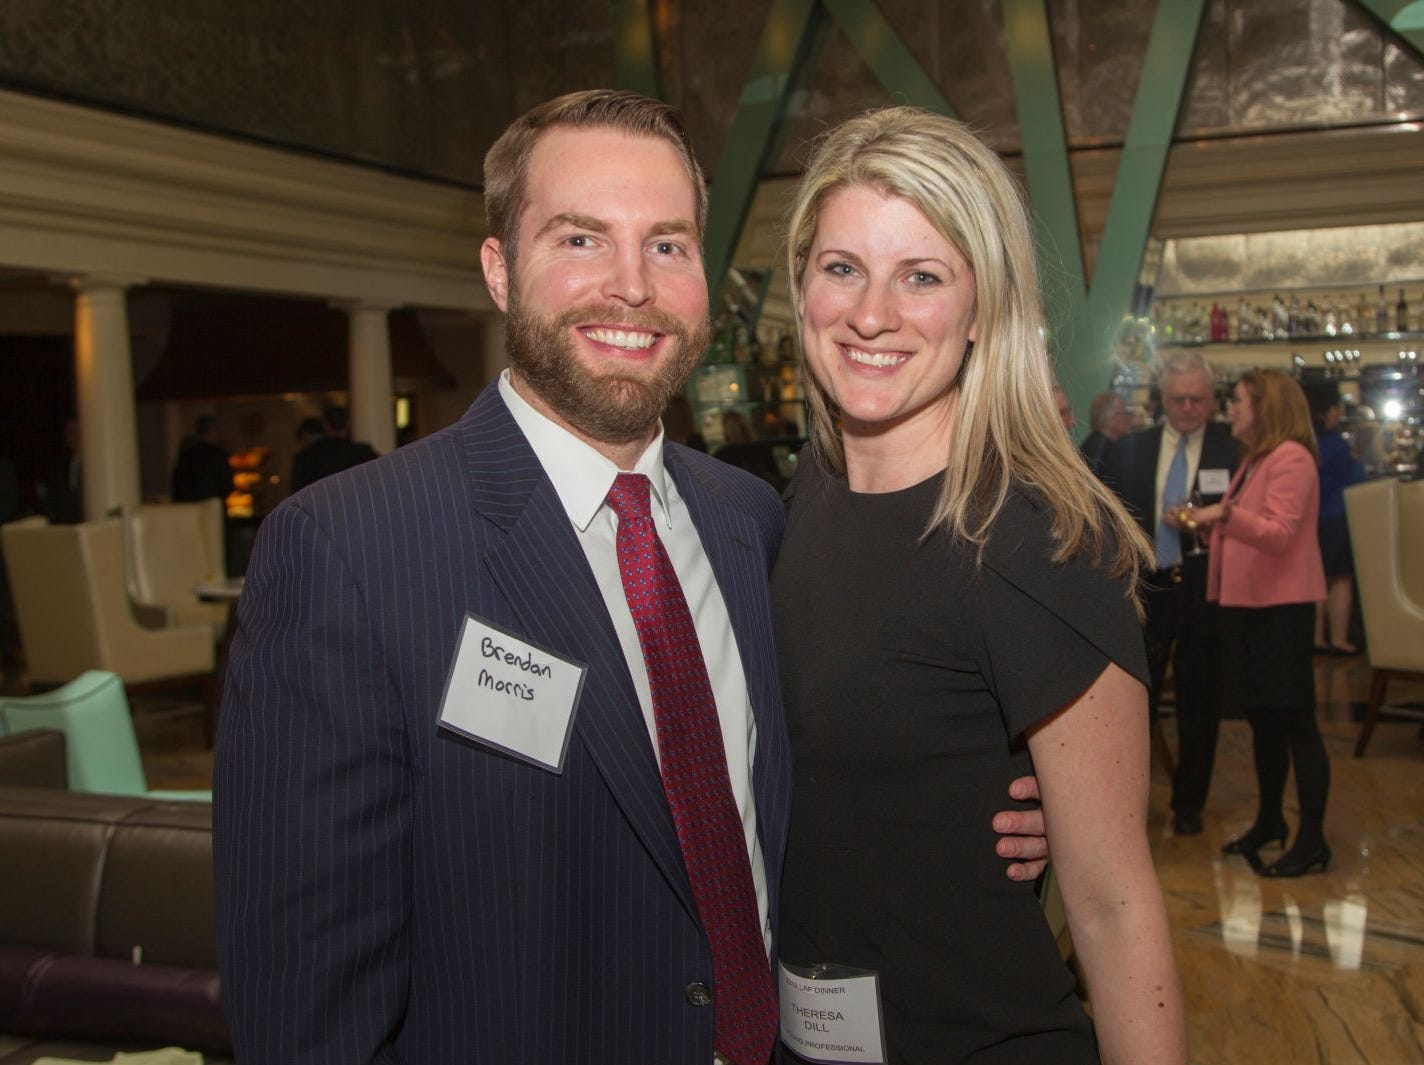 Brendan Morris, Theresa Dill. Eva's Village hosted its second annual Lawyers, Accountants and Financial Professionals Benefit Dinner at Westmount Country Club in Woodland Park. 02/21/2019